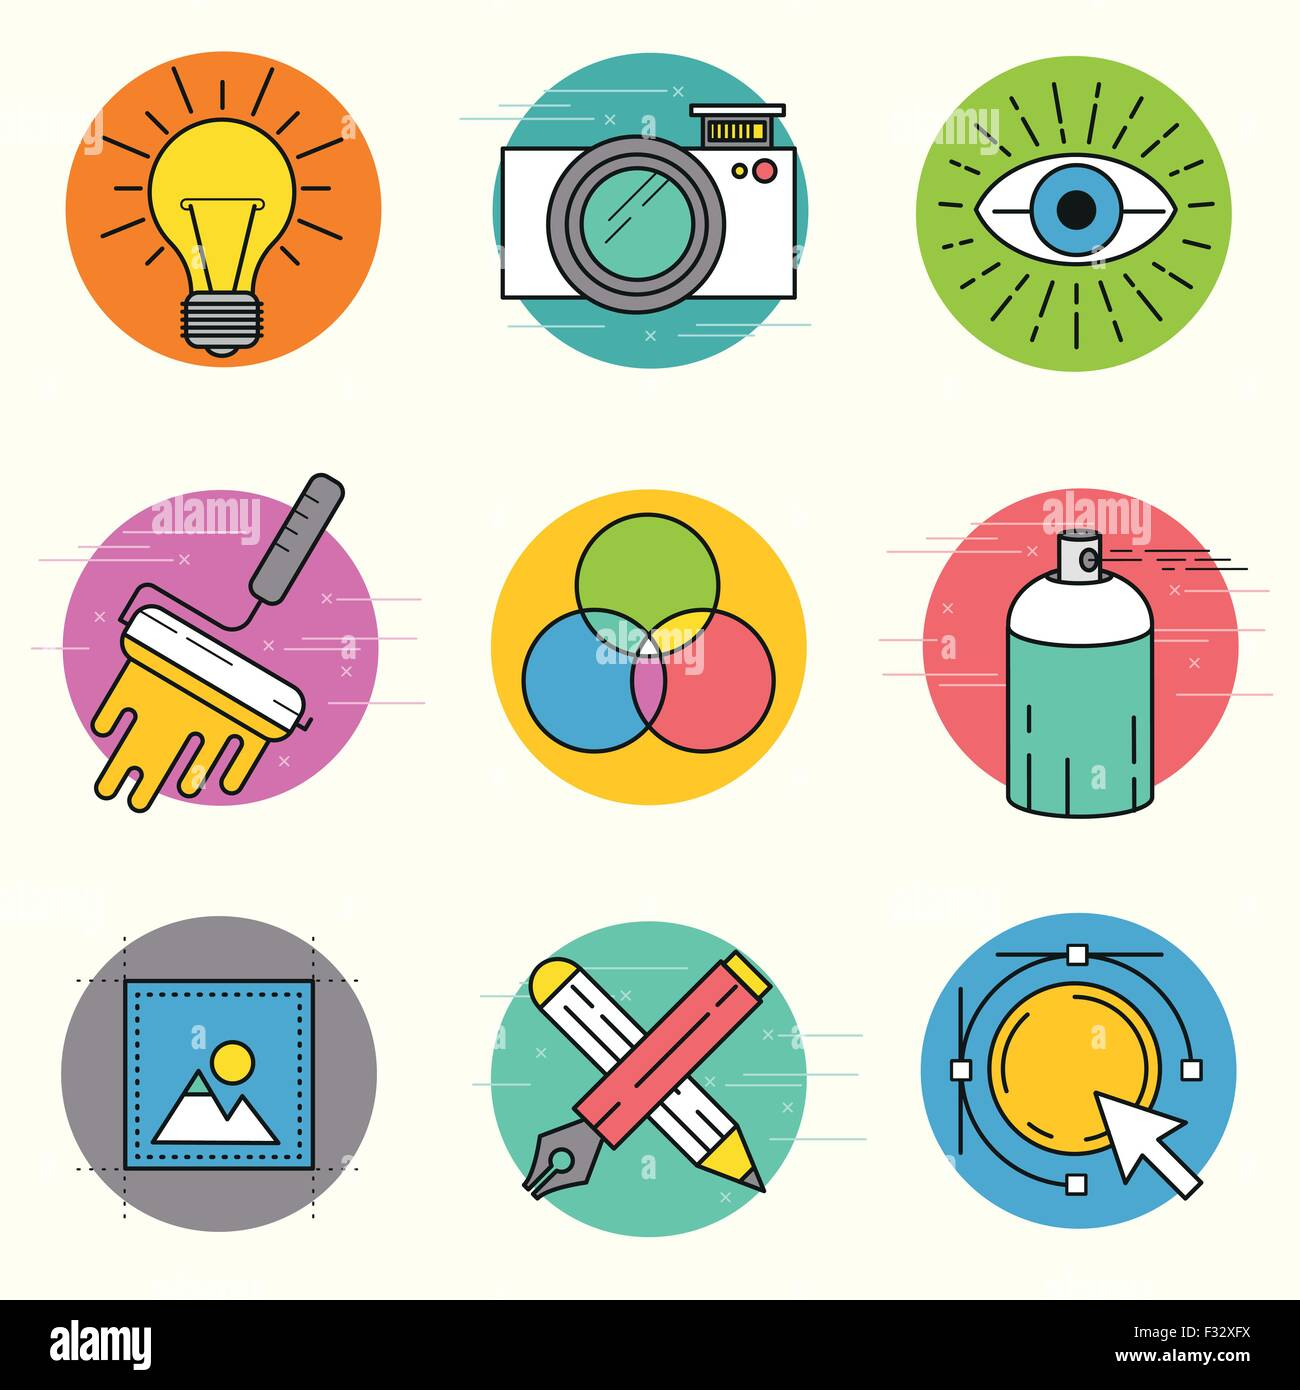 Creative Vector Icon Set. A collection of design themed line icons including art tools, digital design and creative - Stock Image